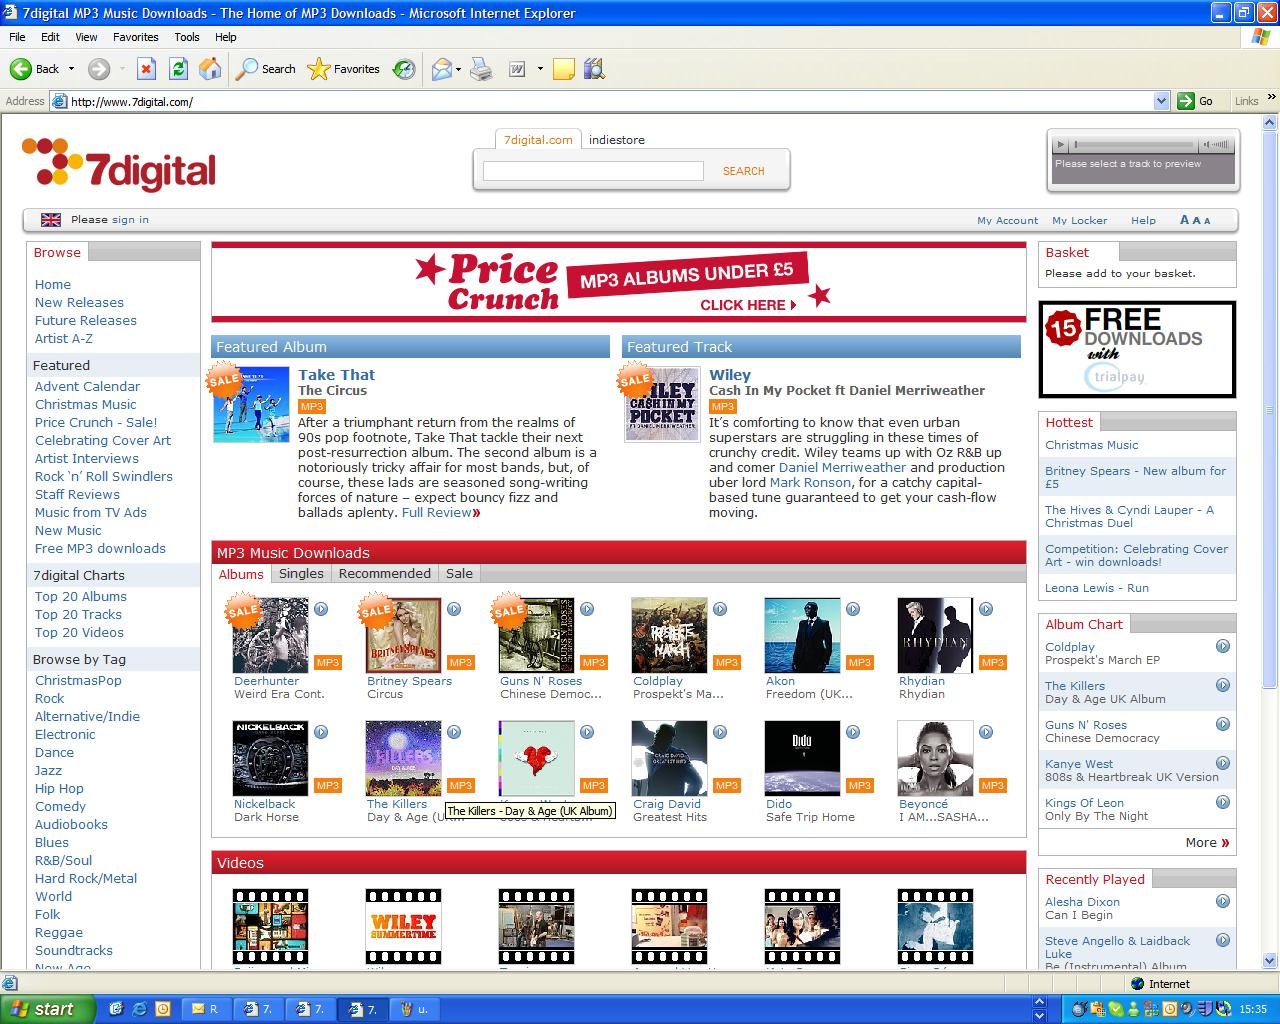 7digital beats Amazon MP3 on quality | TechRadar